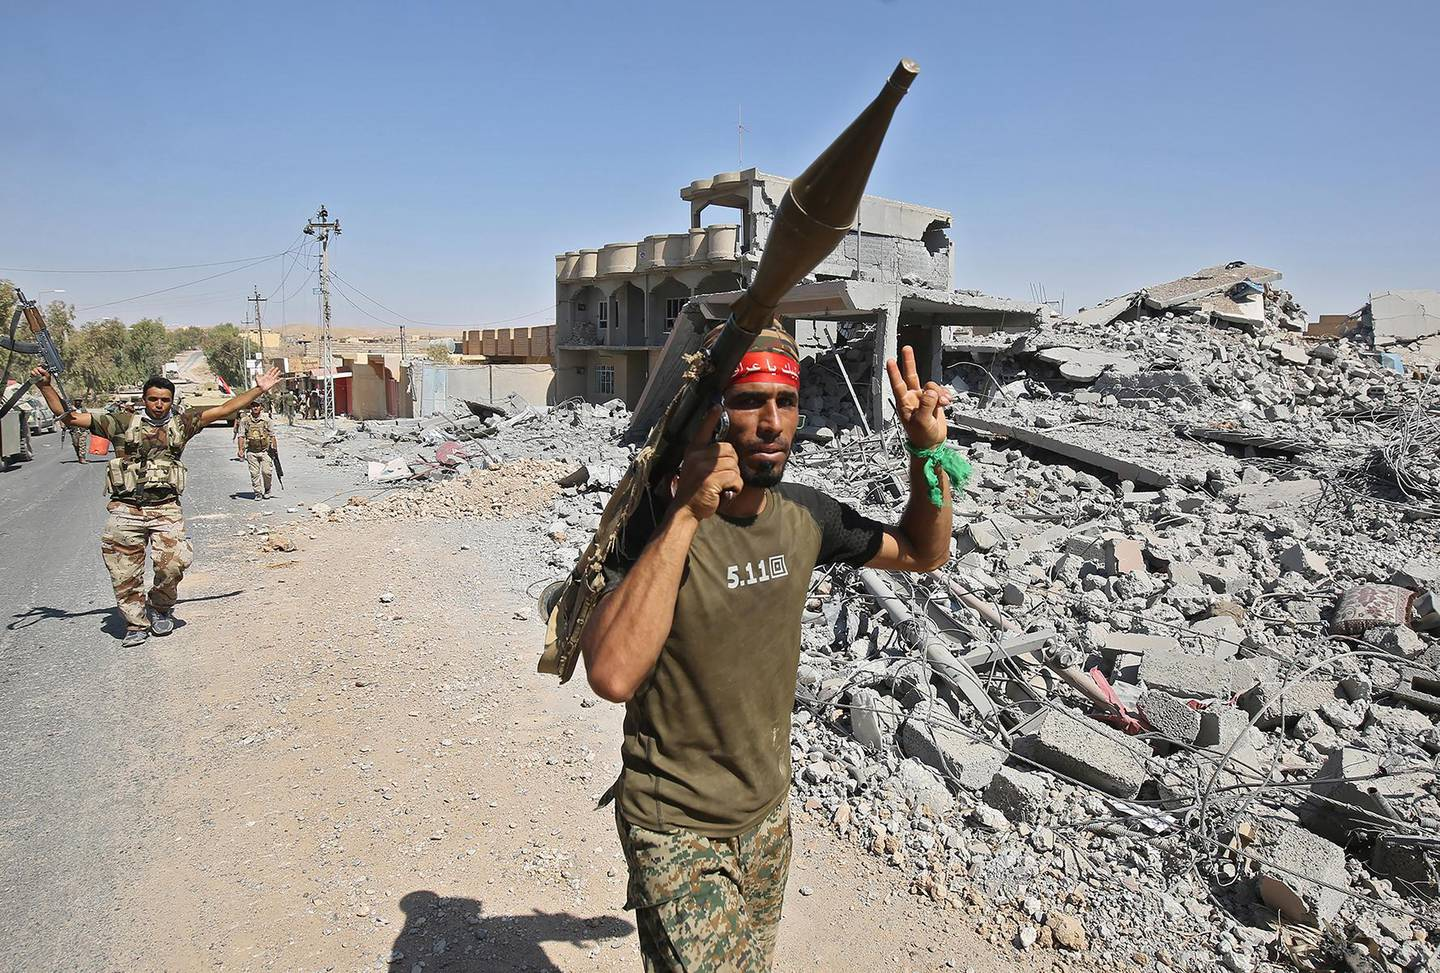 A fighter of the Hashed Al-Shaabi (Popular Mobilization units) flashes the victory gesture while carrying a rocket-propelled grenade (RPG) launcher during the advance through the town of Tal Afar, west of Mosul, after the Iraqi government announced the launch of the operation to retake it from Islamic State (IS) group control, on August 26, 2017. (Photo by AHMAD AL-RUBAYE / AFP)